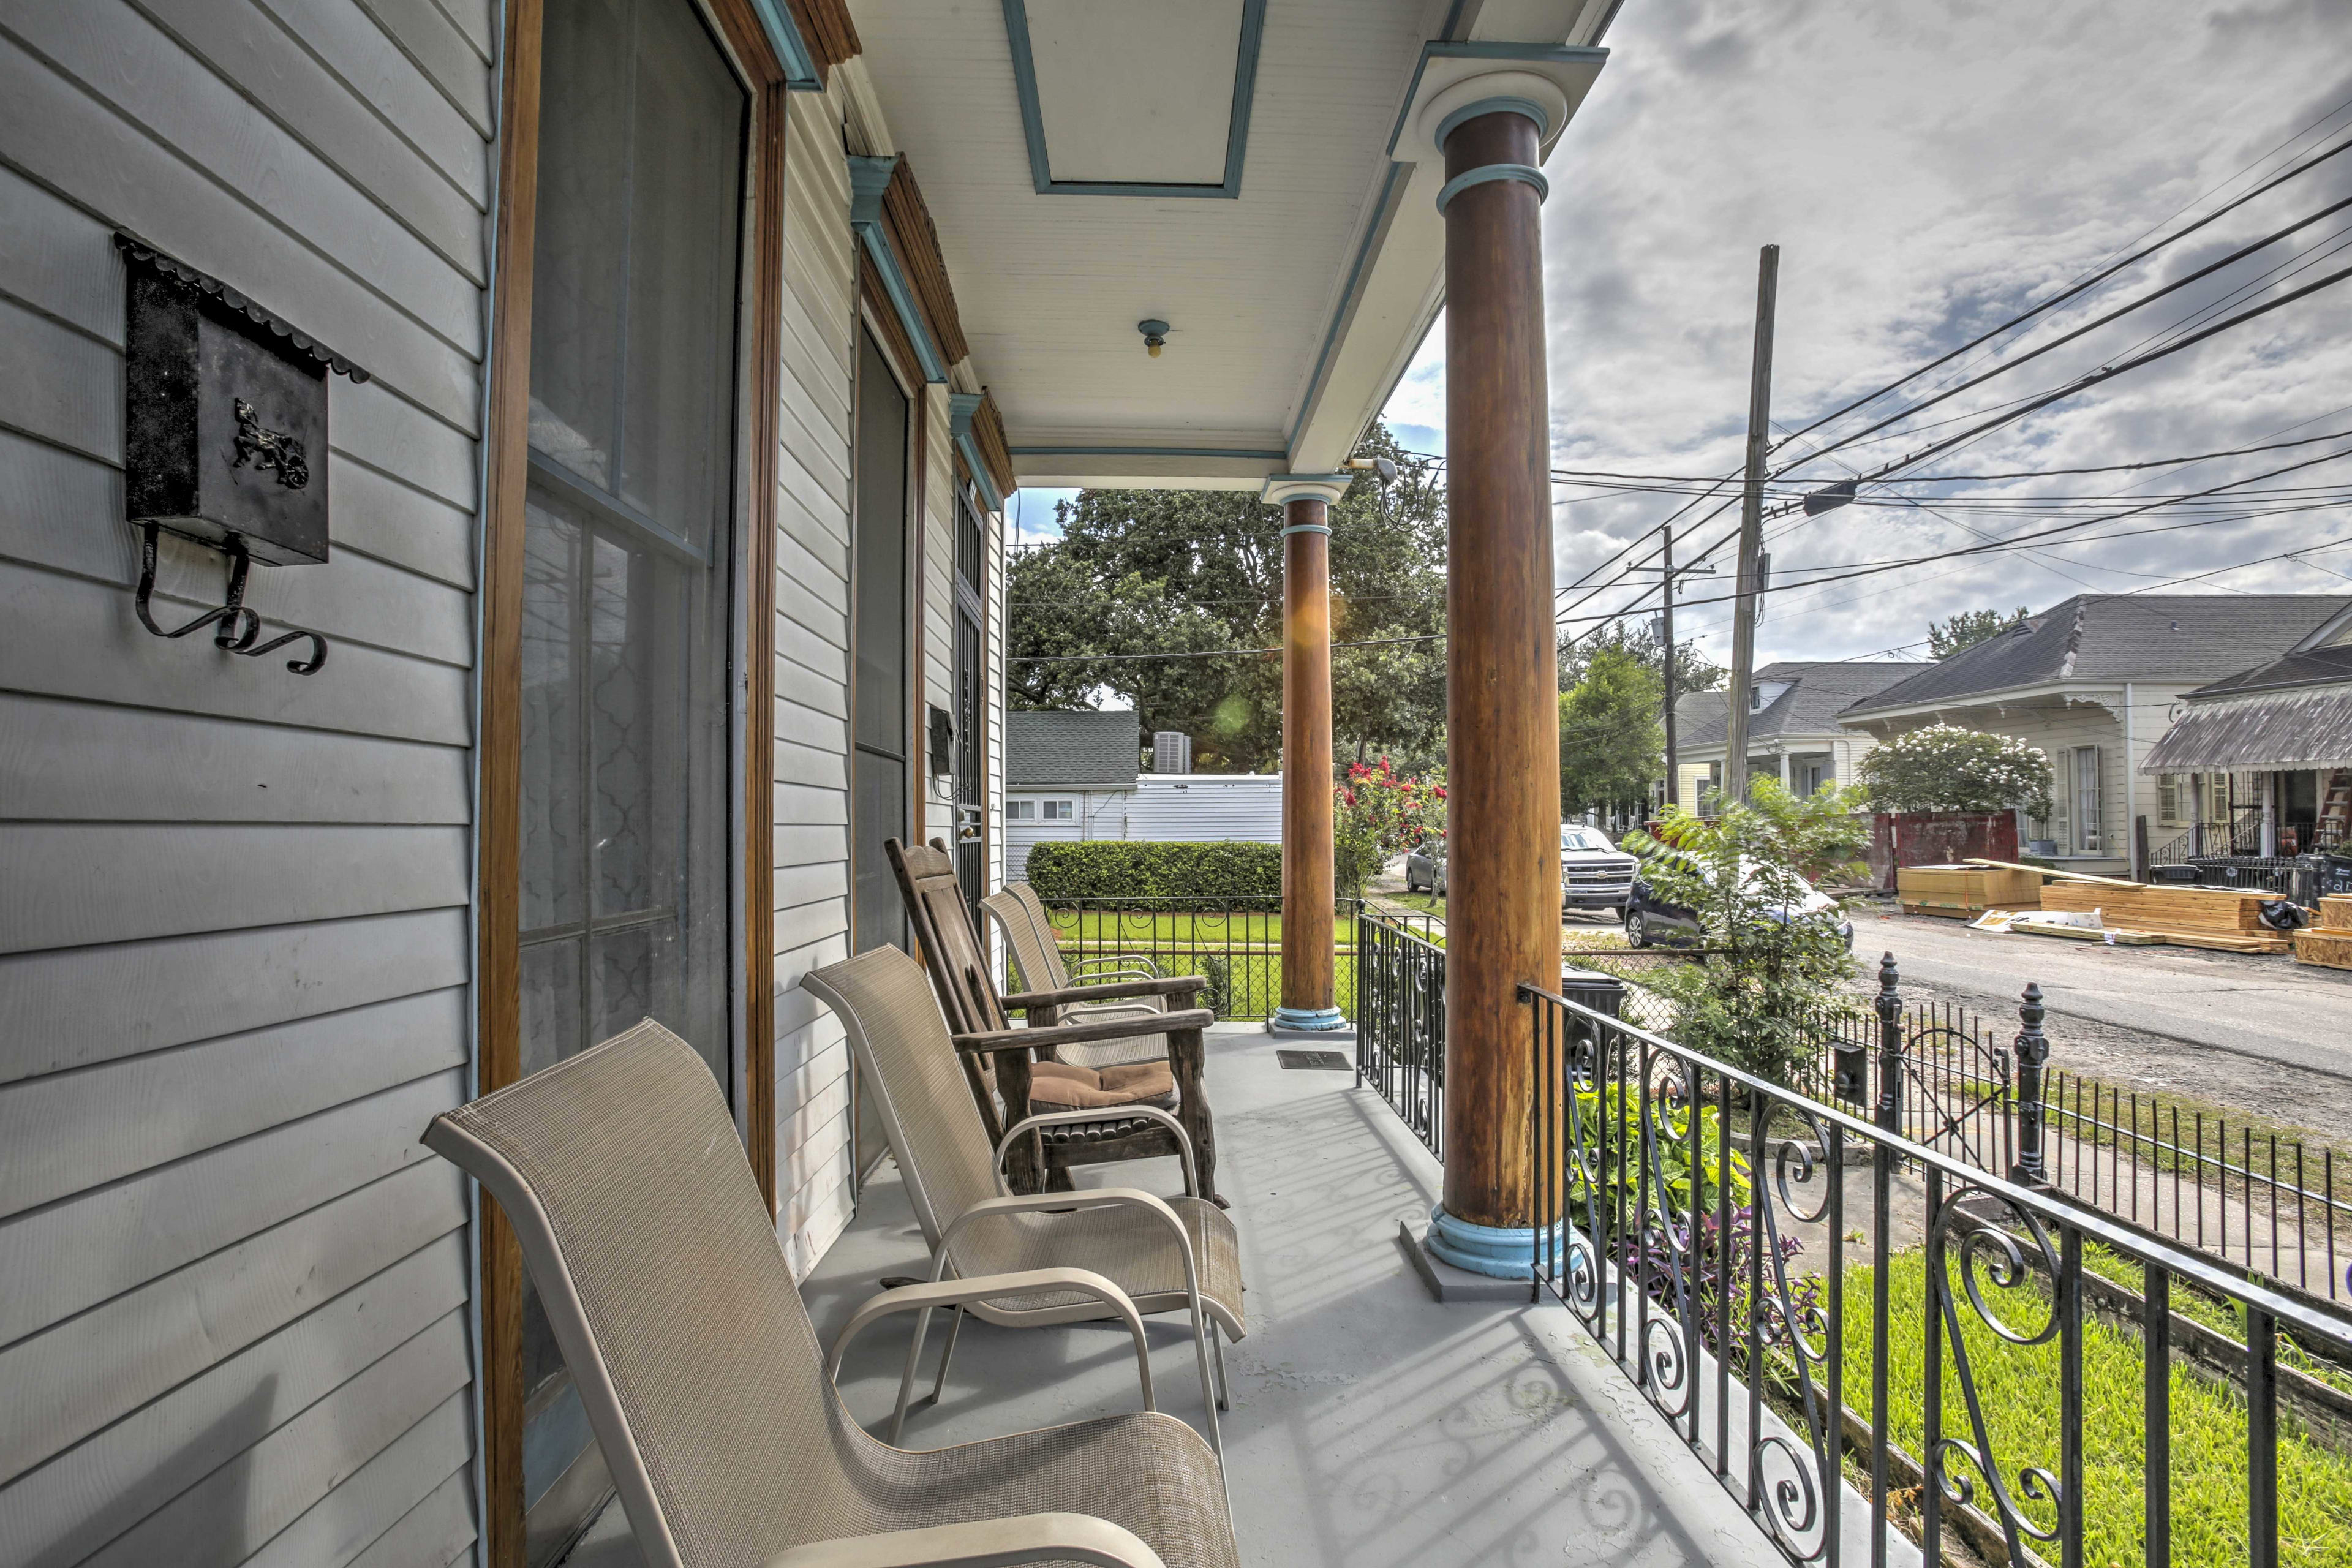 The home is located in a quiet, historic neighborhood.